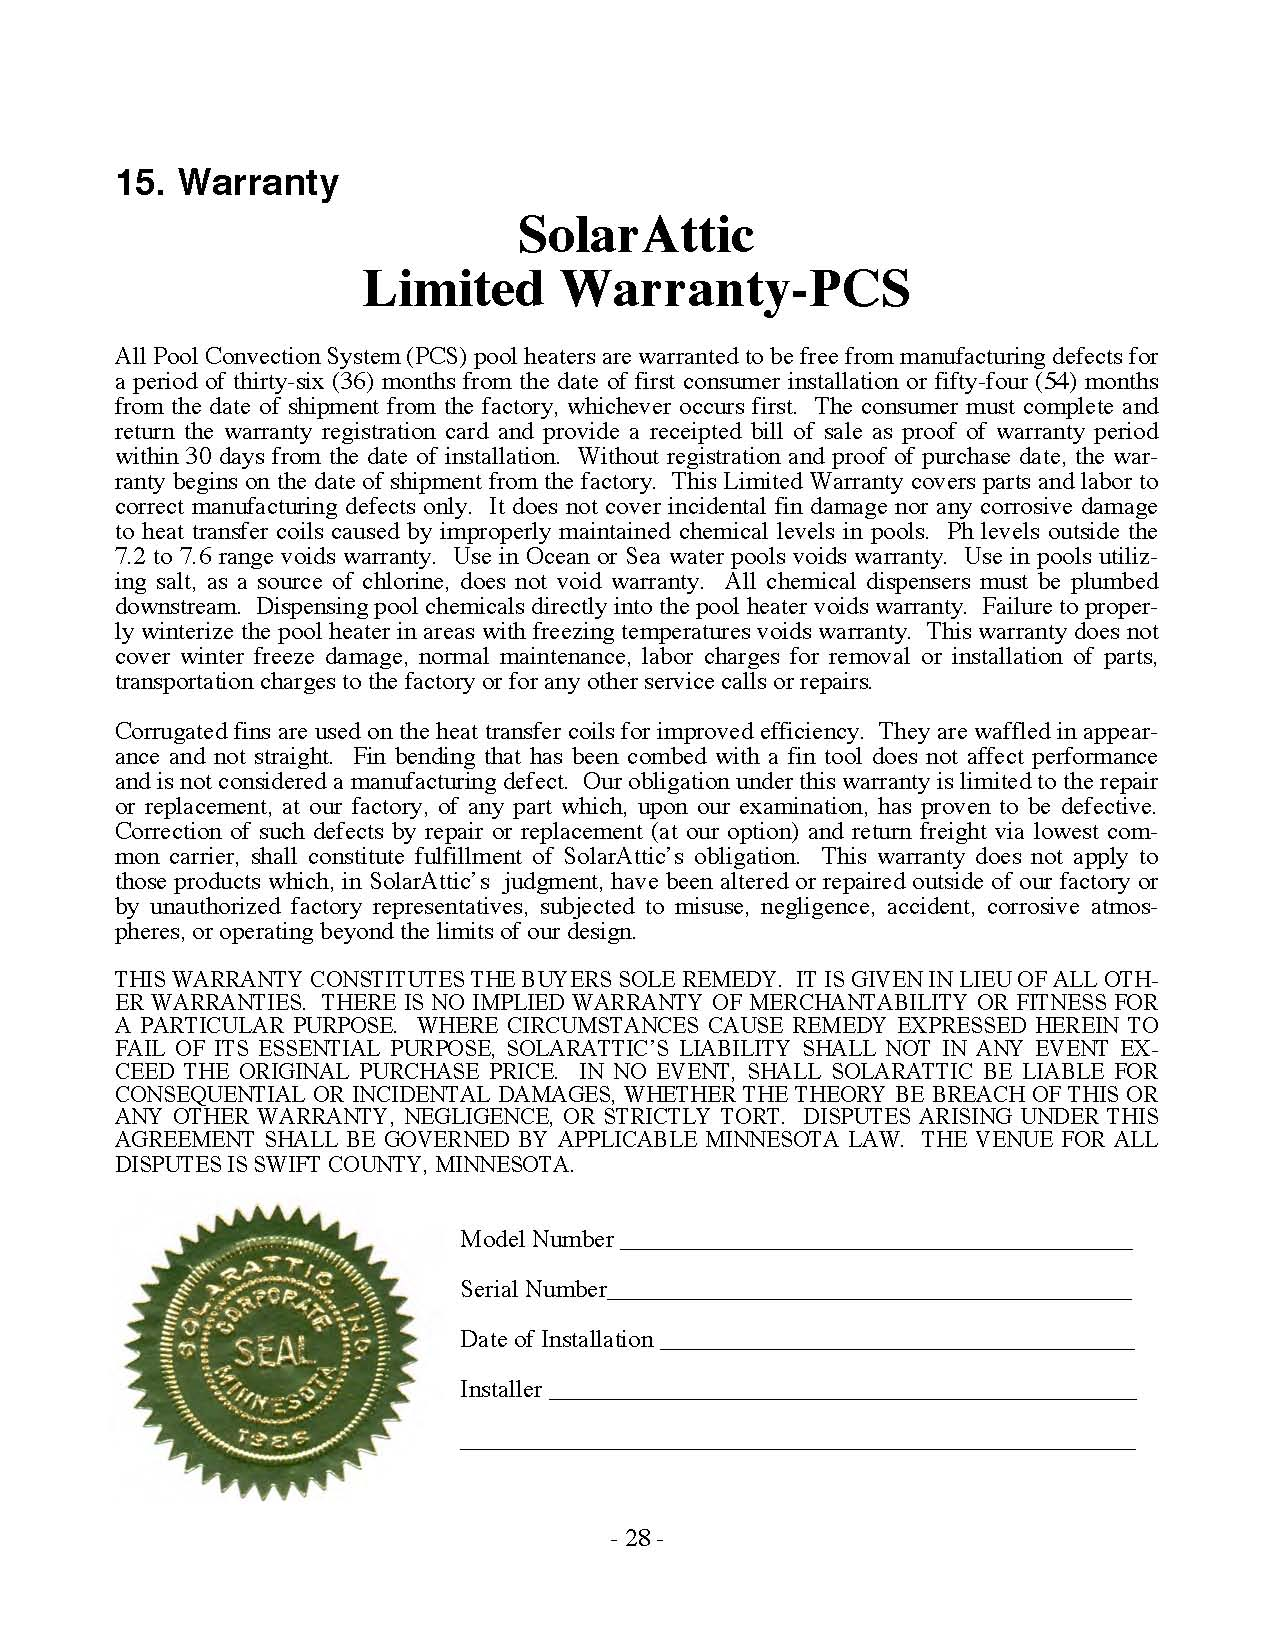 Image of the third generation attic solar pool heater model PCS3 Warranty Certificate